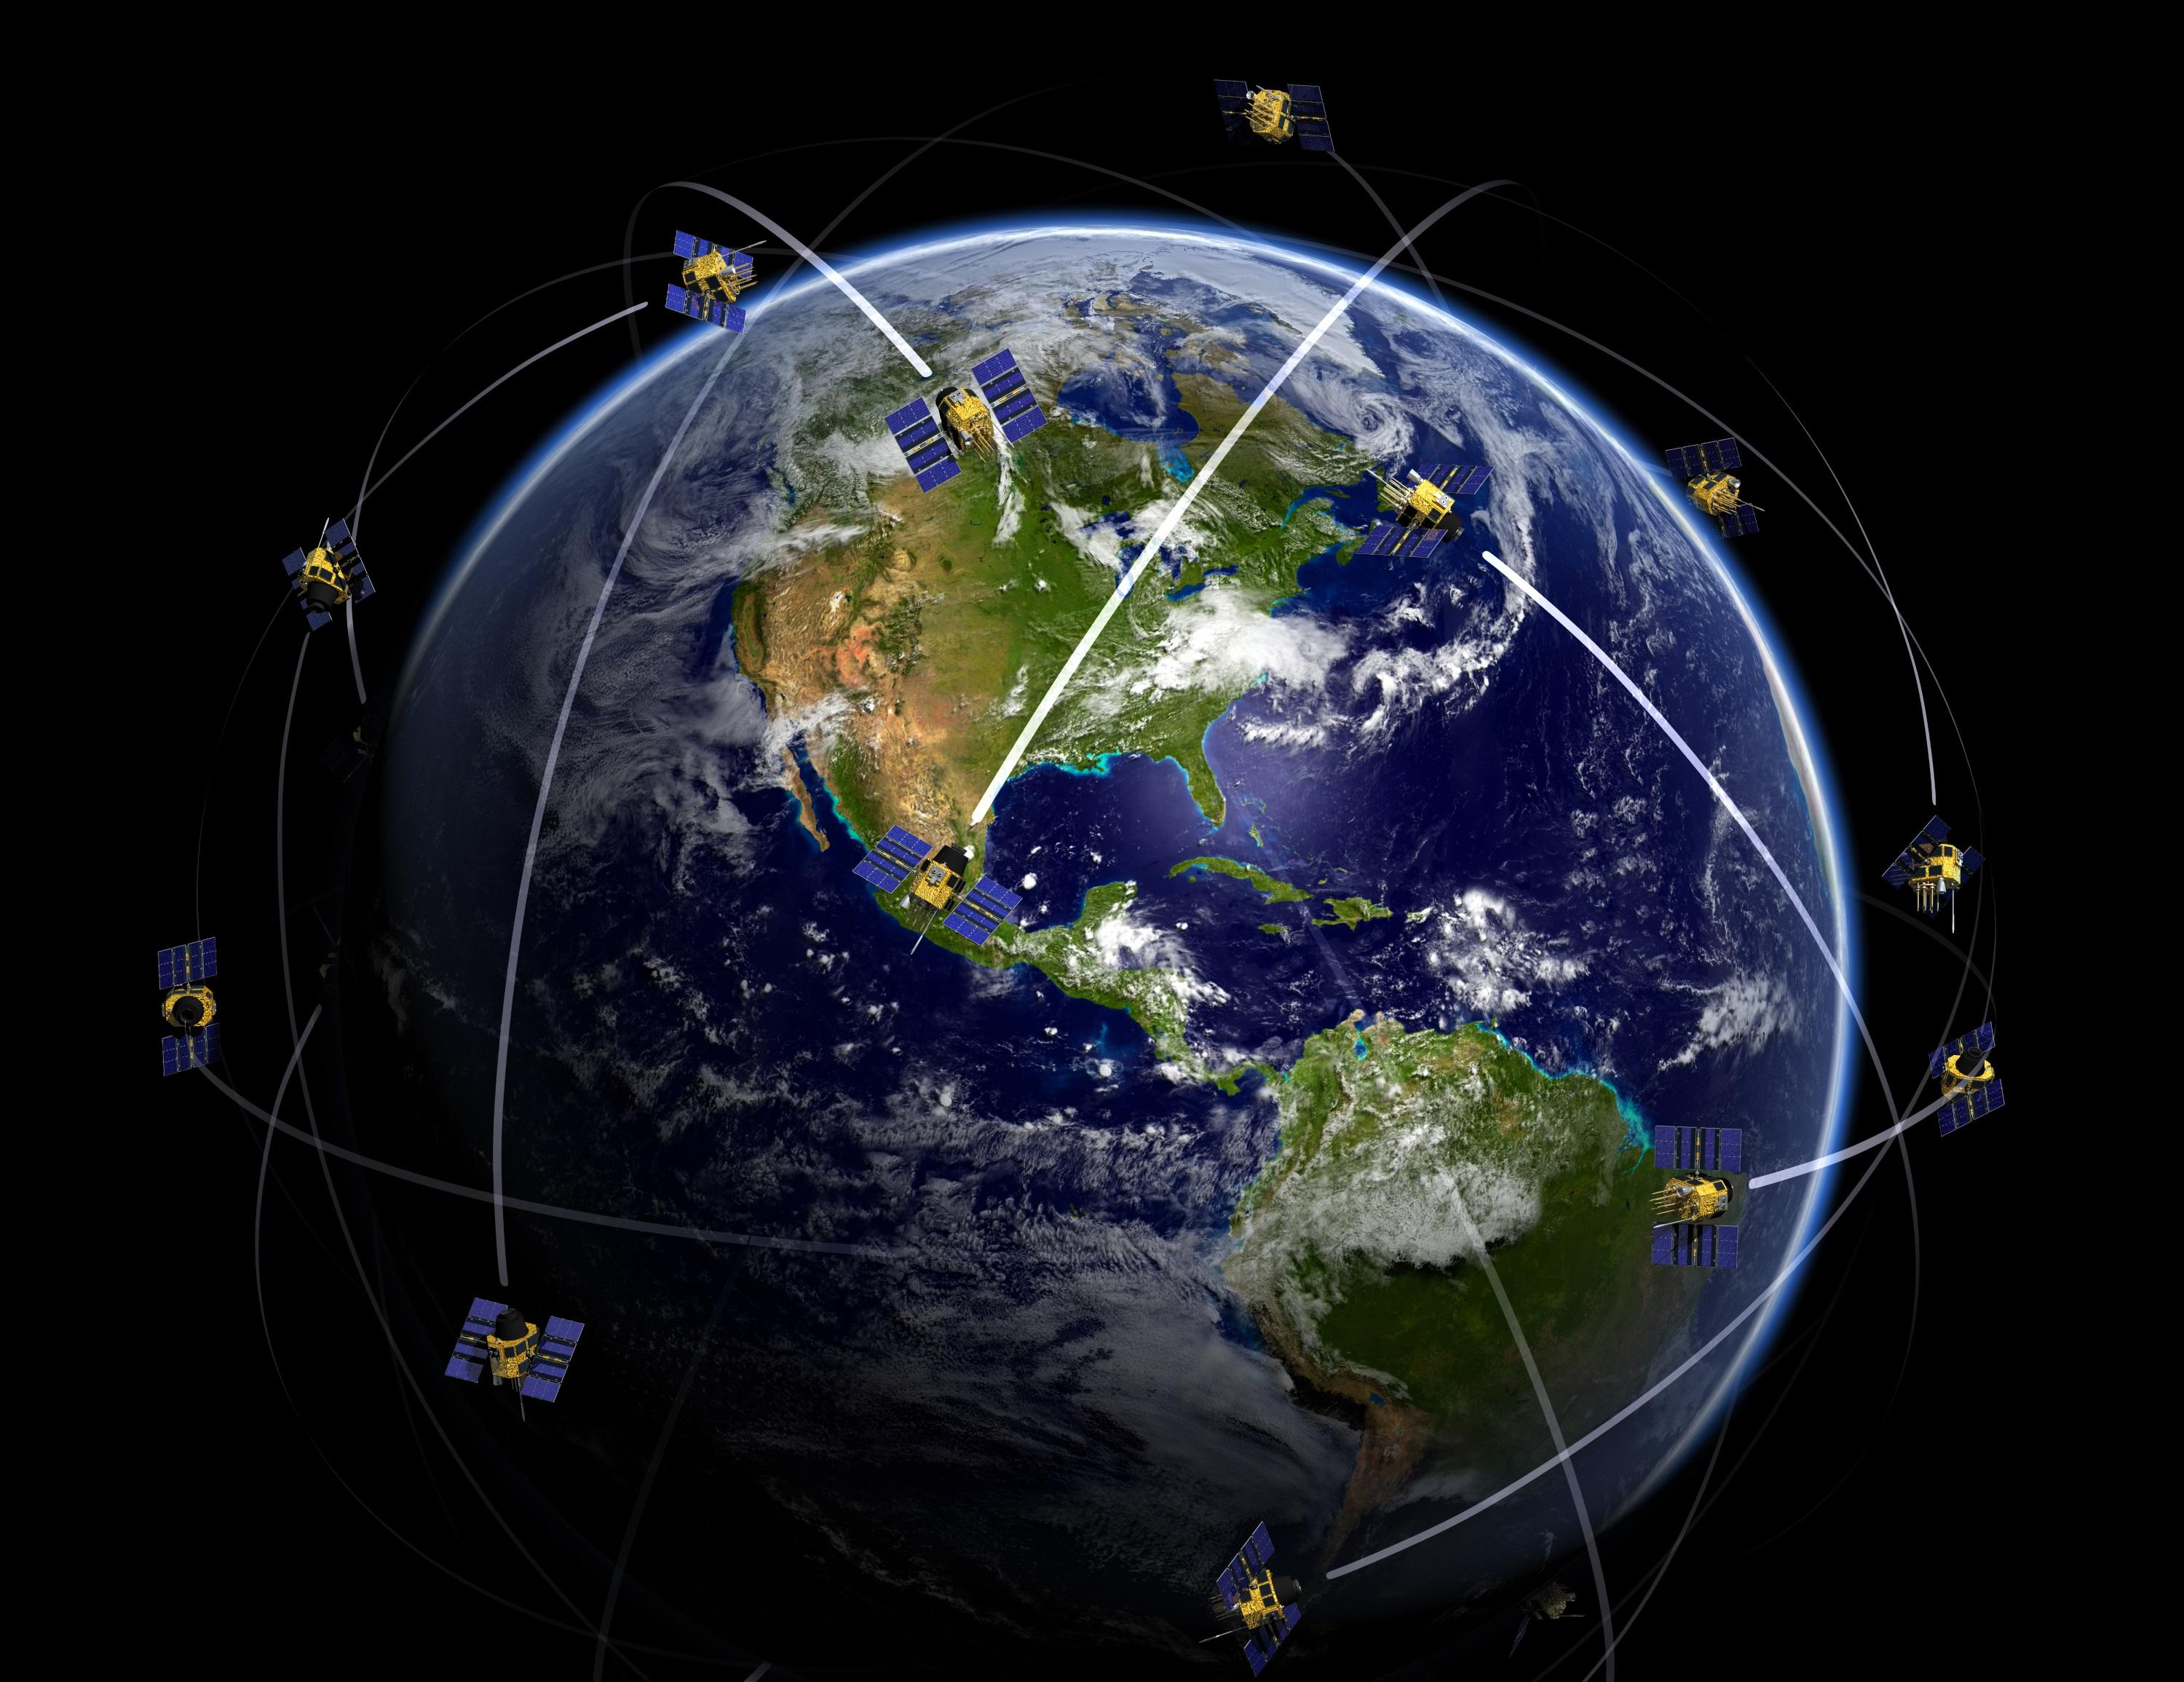 Kayhan Space wants to be the air traffic control service for satellites in space